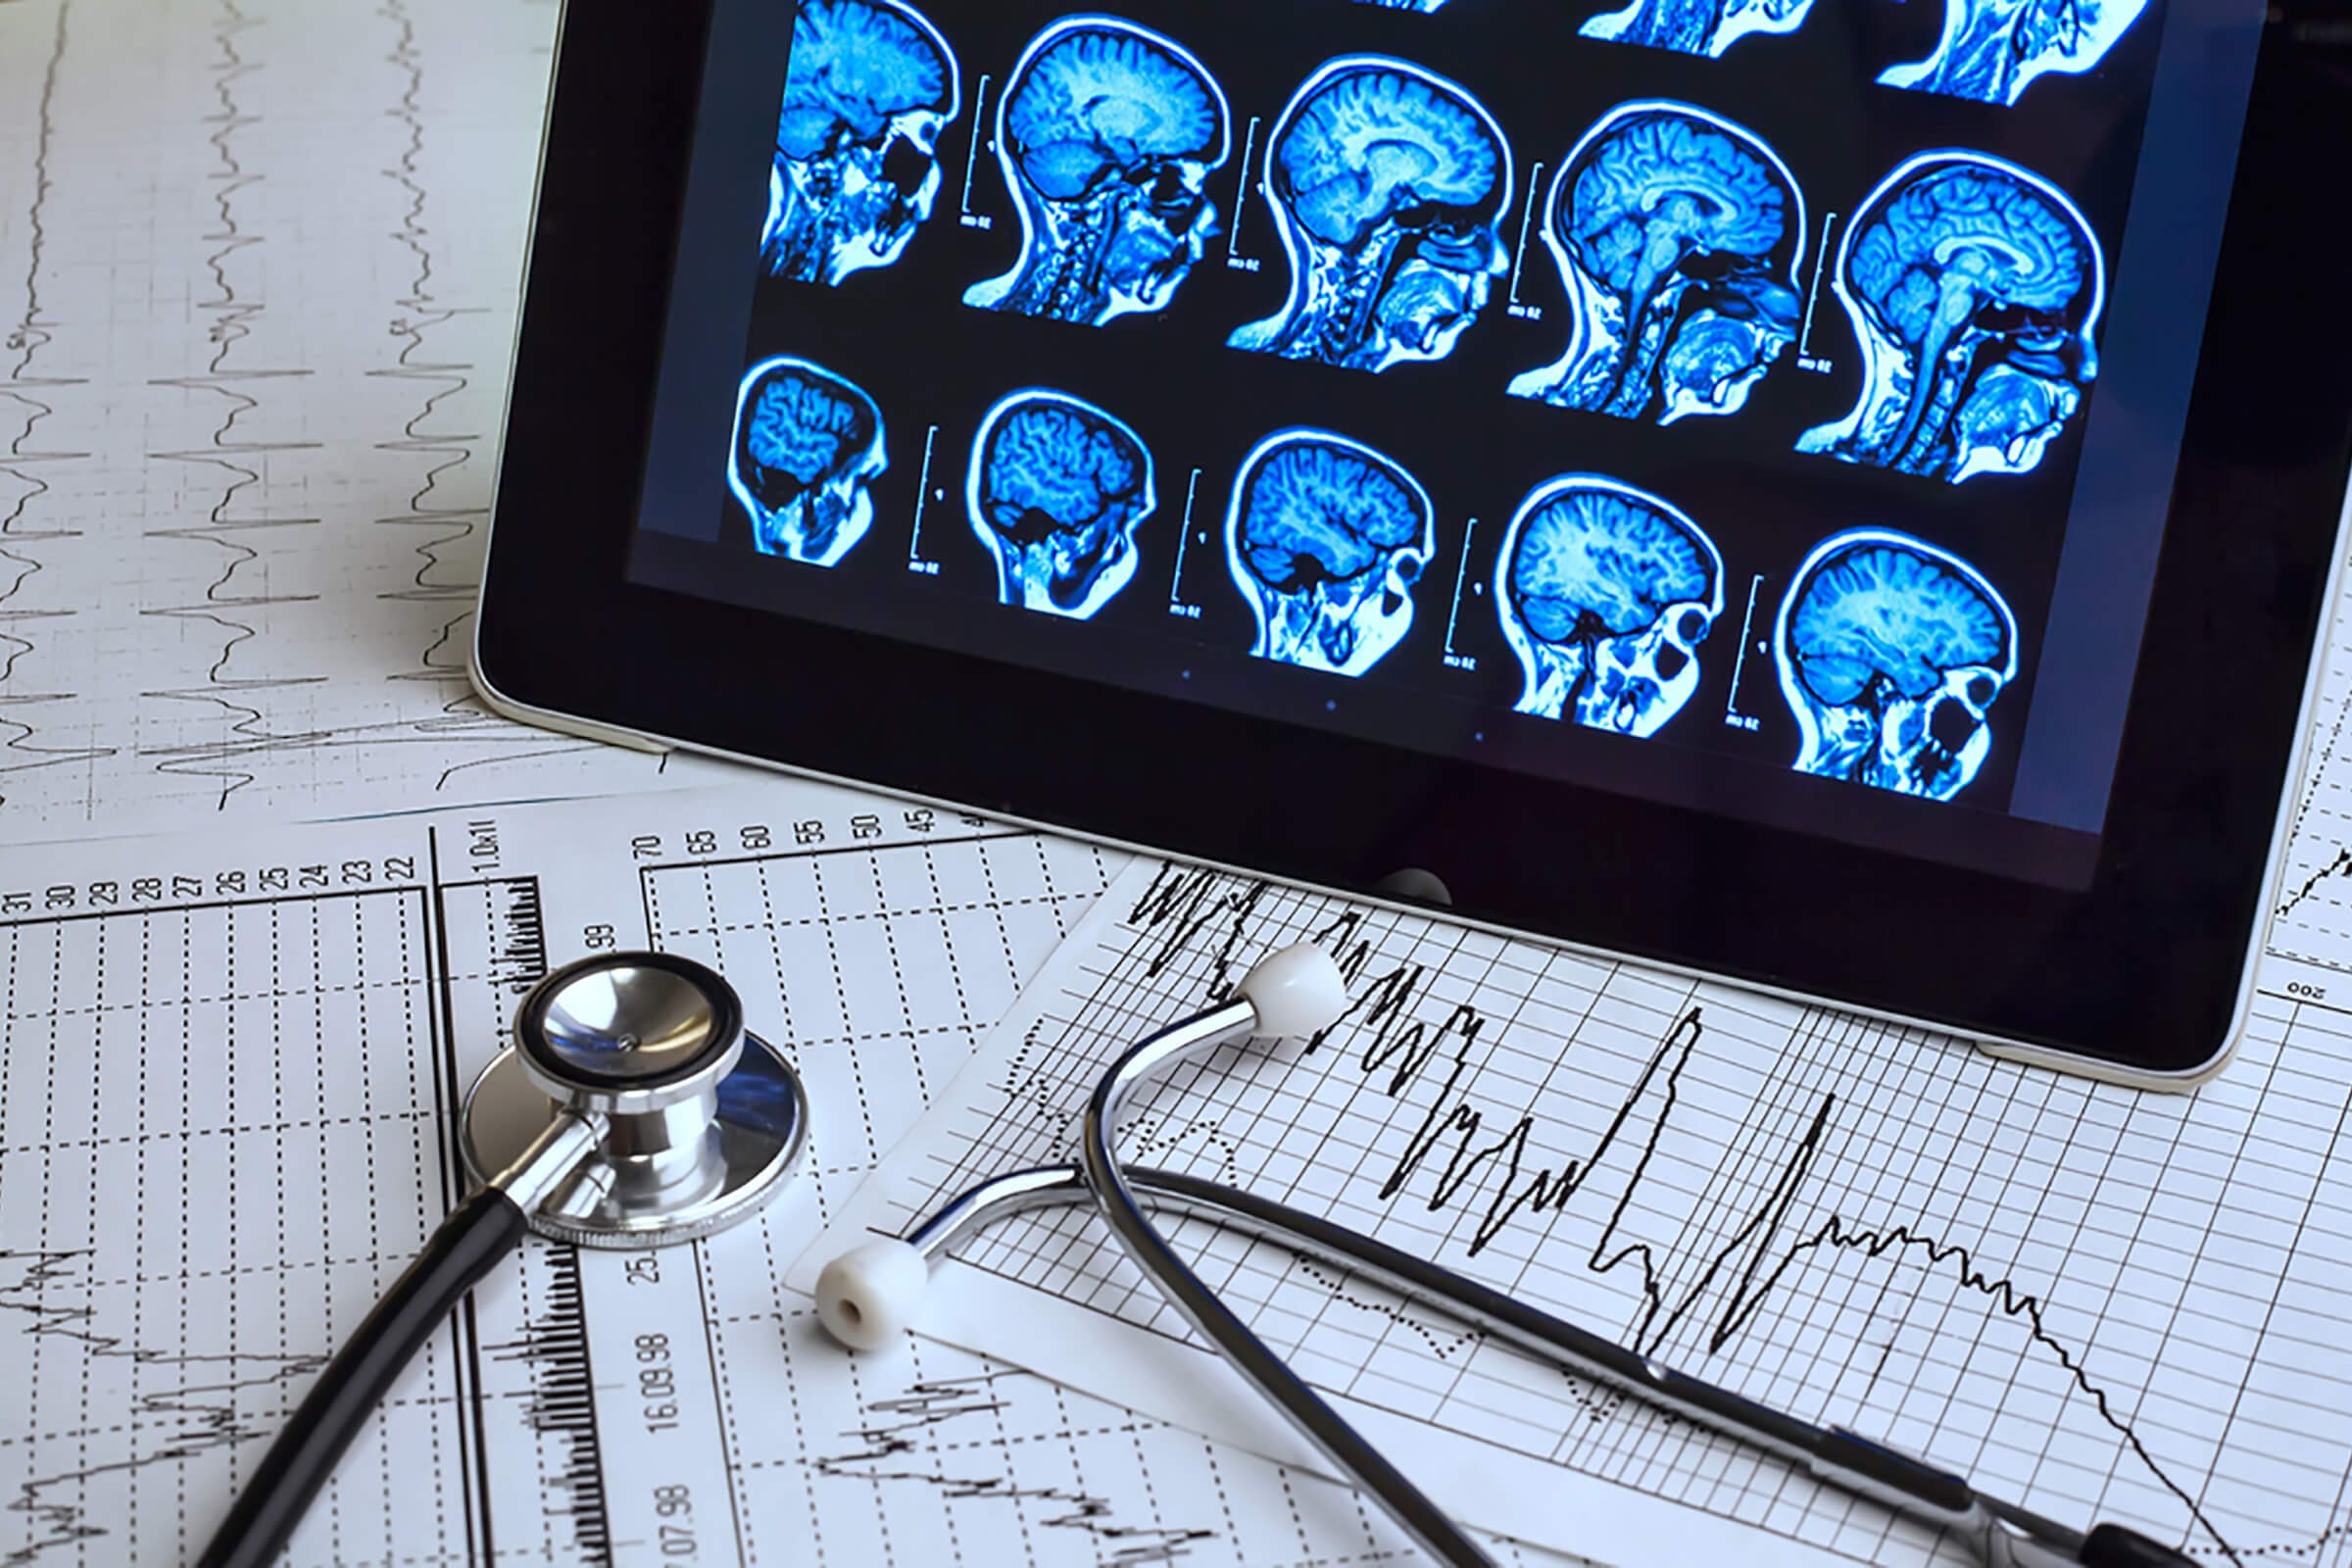 brain scans and images with stethoscope